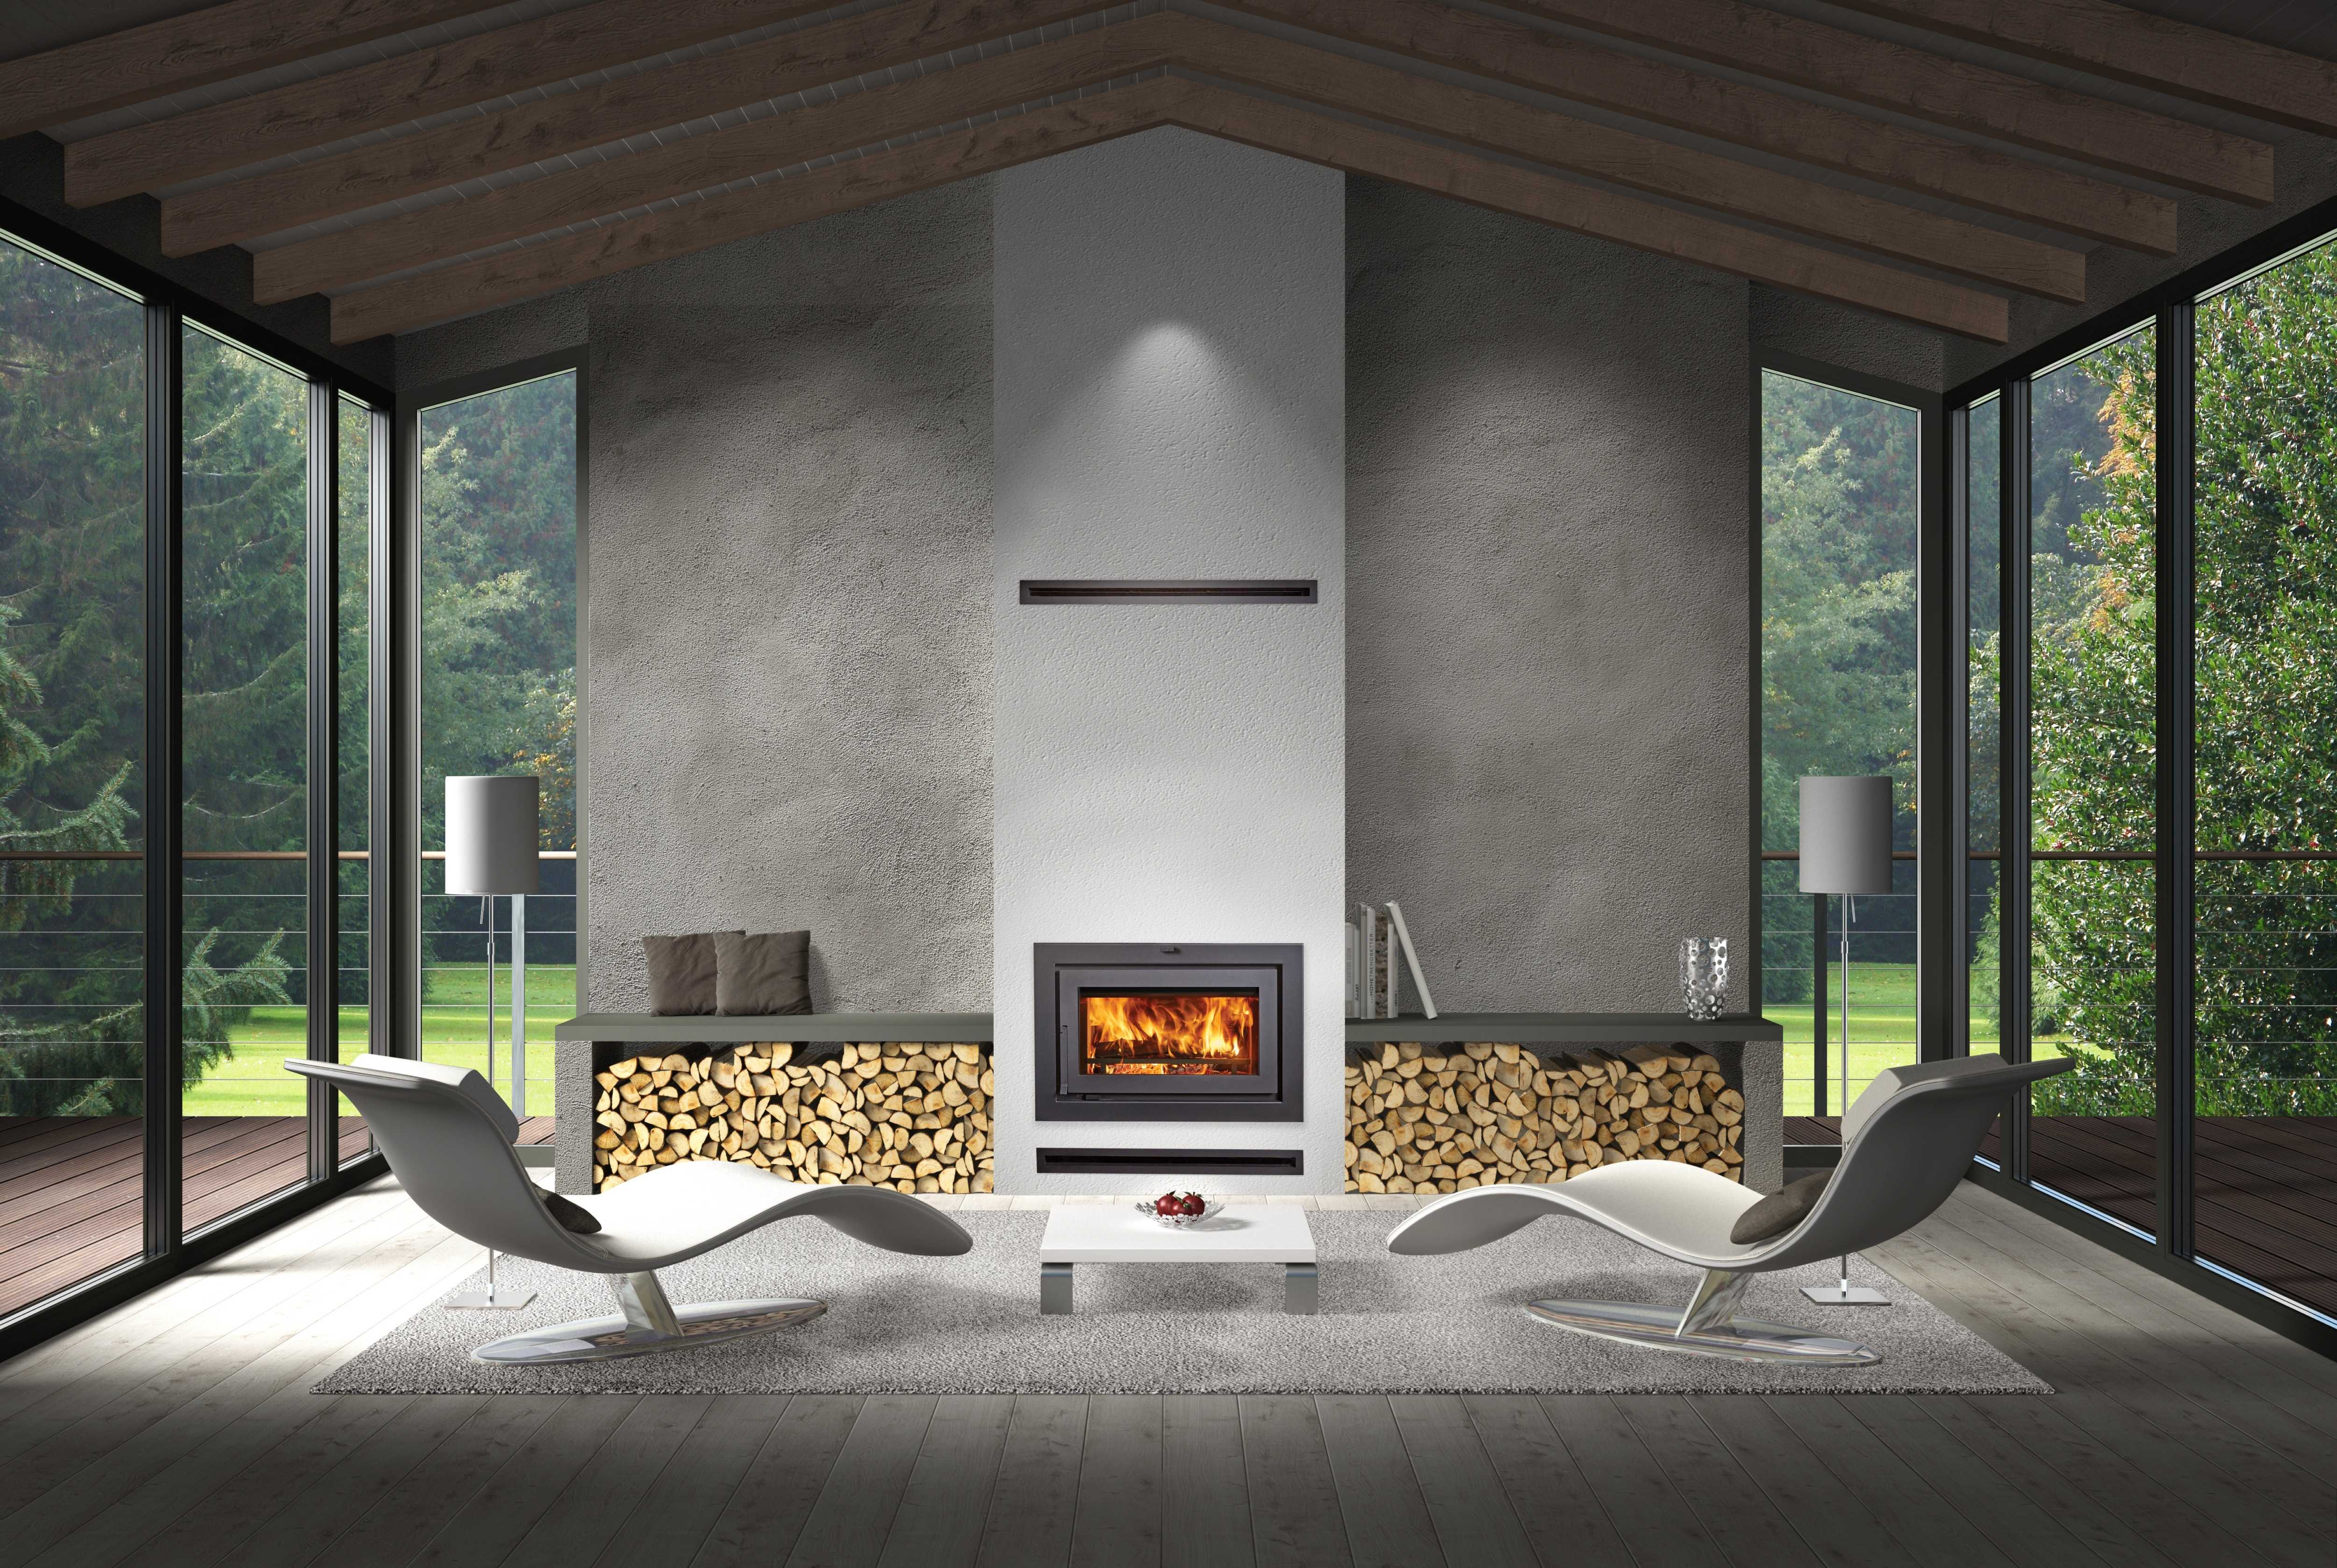 One more Image of the modern modern 42 Apex Clean Face woodburning fireplace featuring a traditional face.